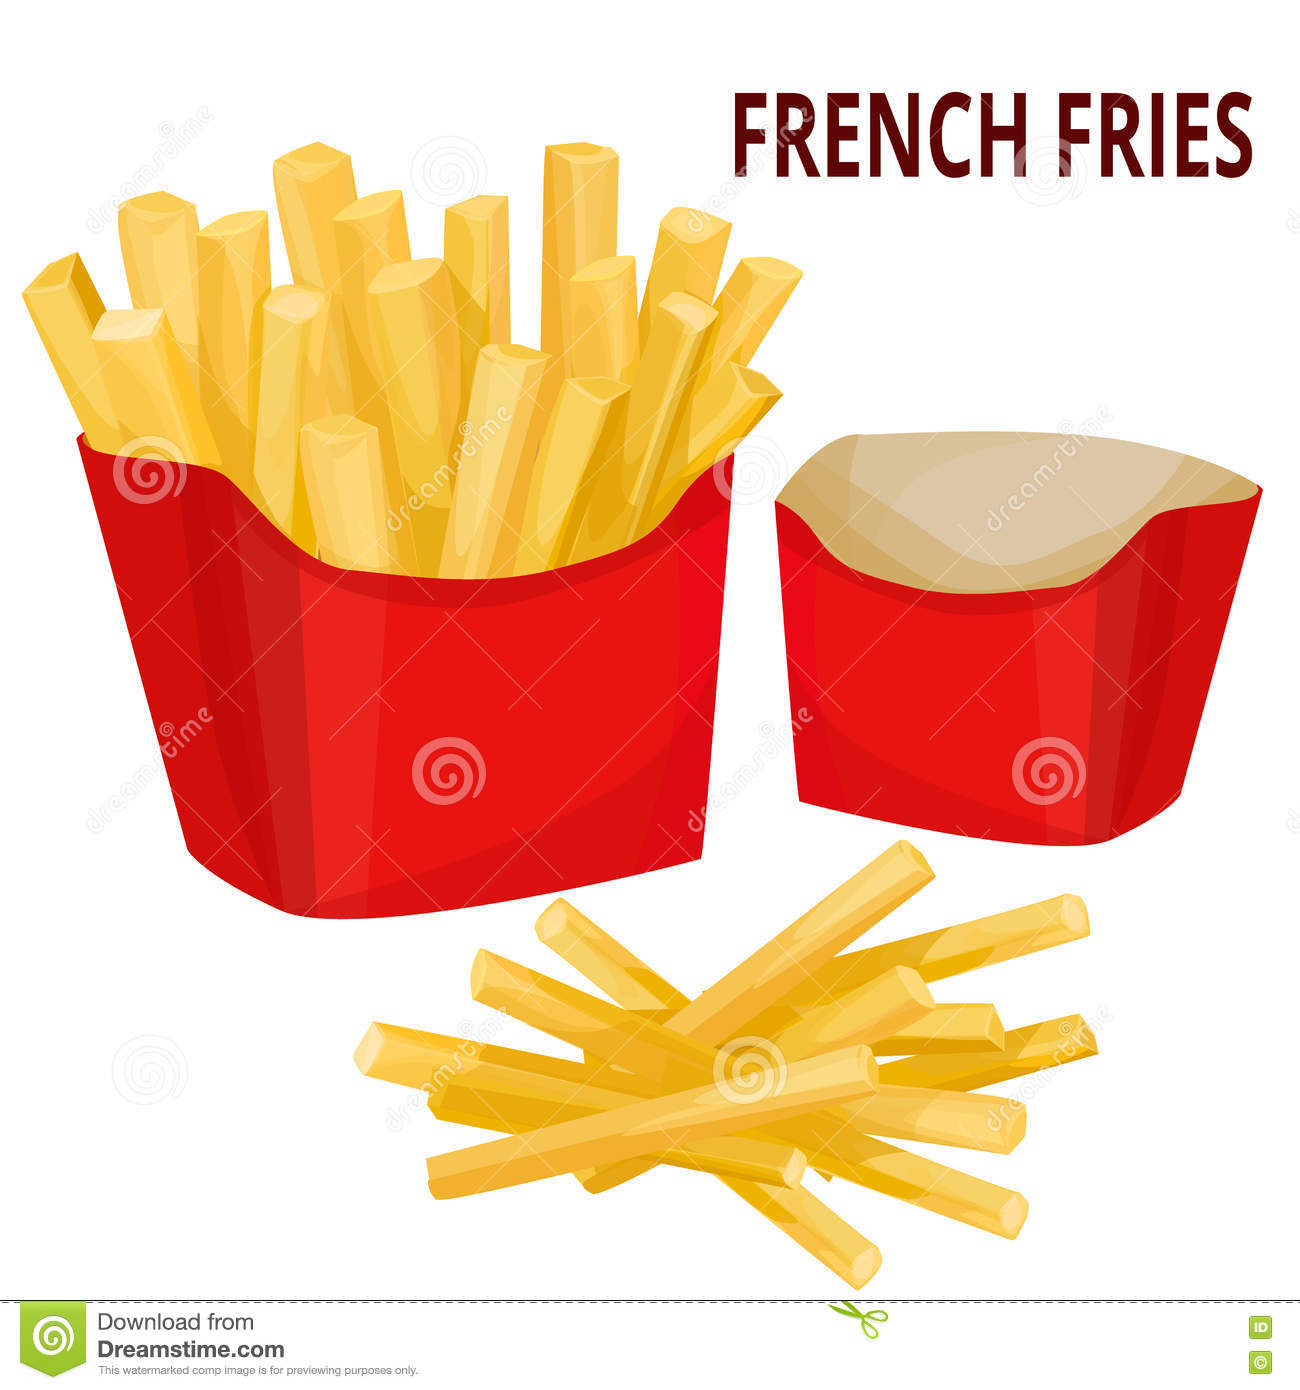 French fries, packaging